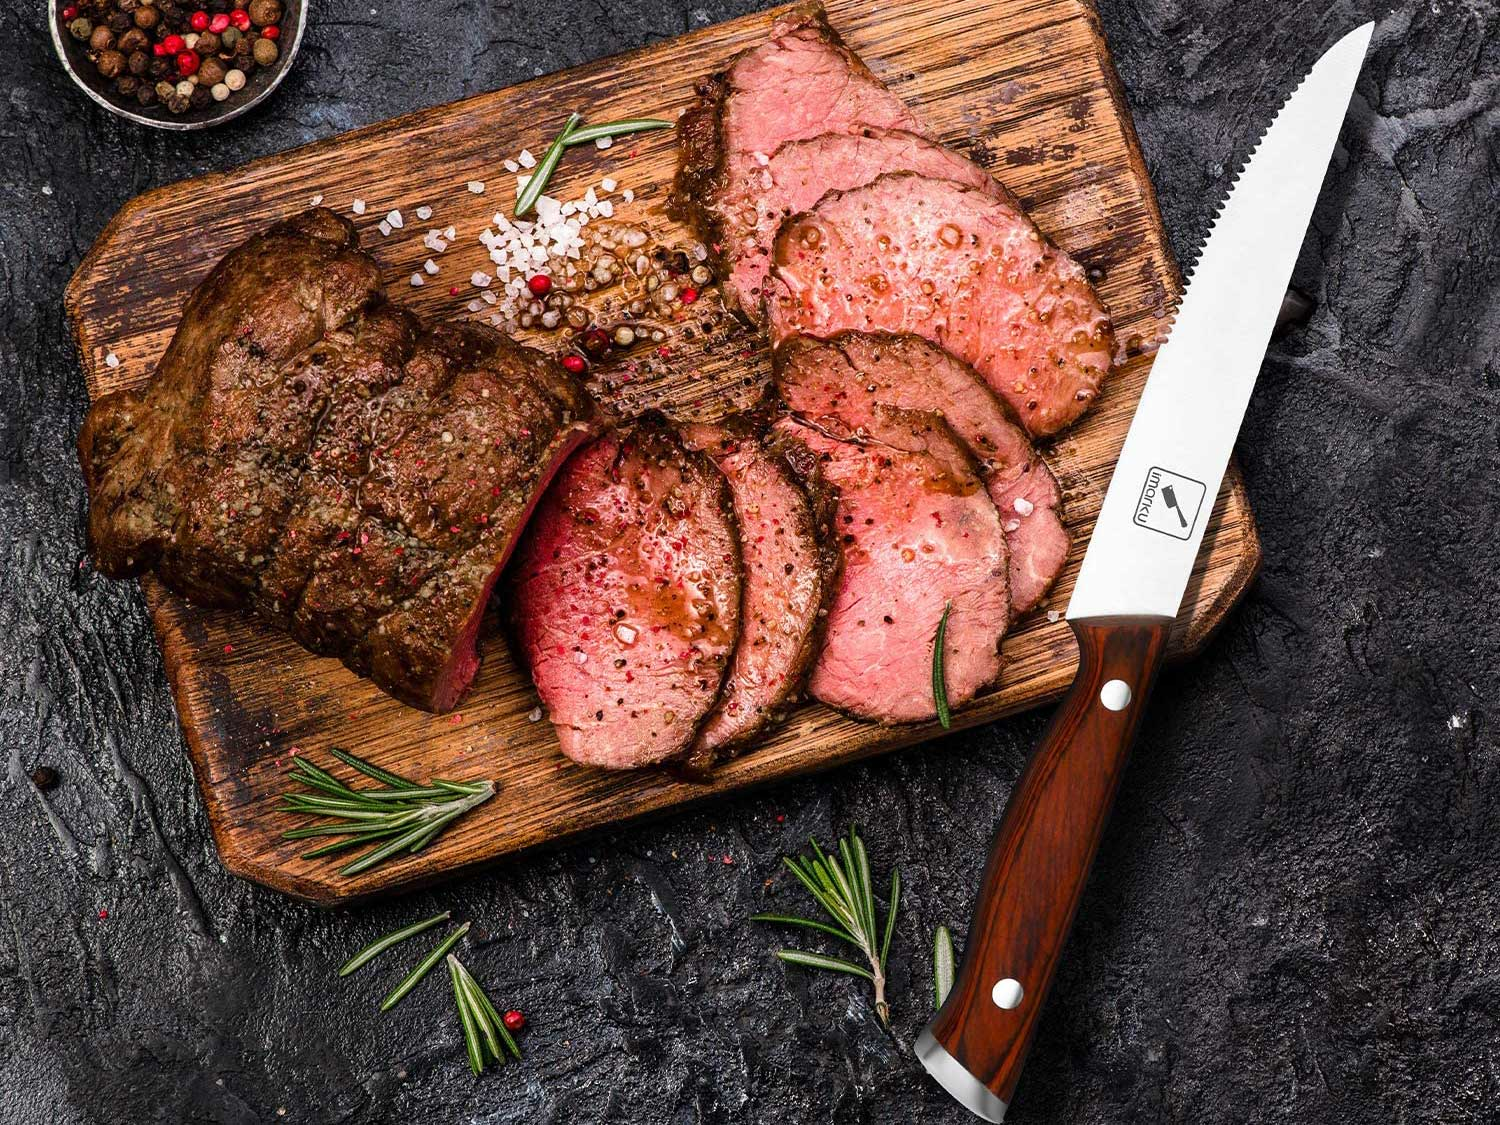 Steak knife on cutting board with sliced meat.